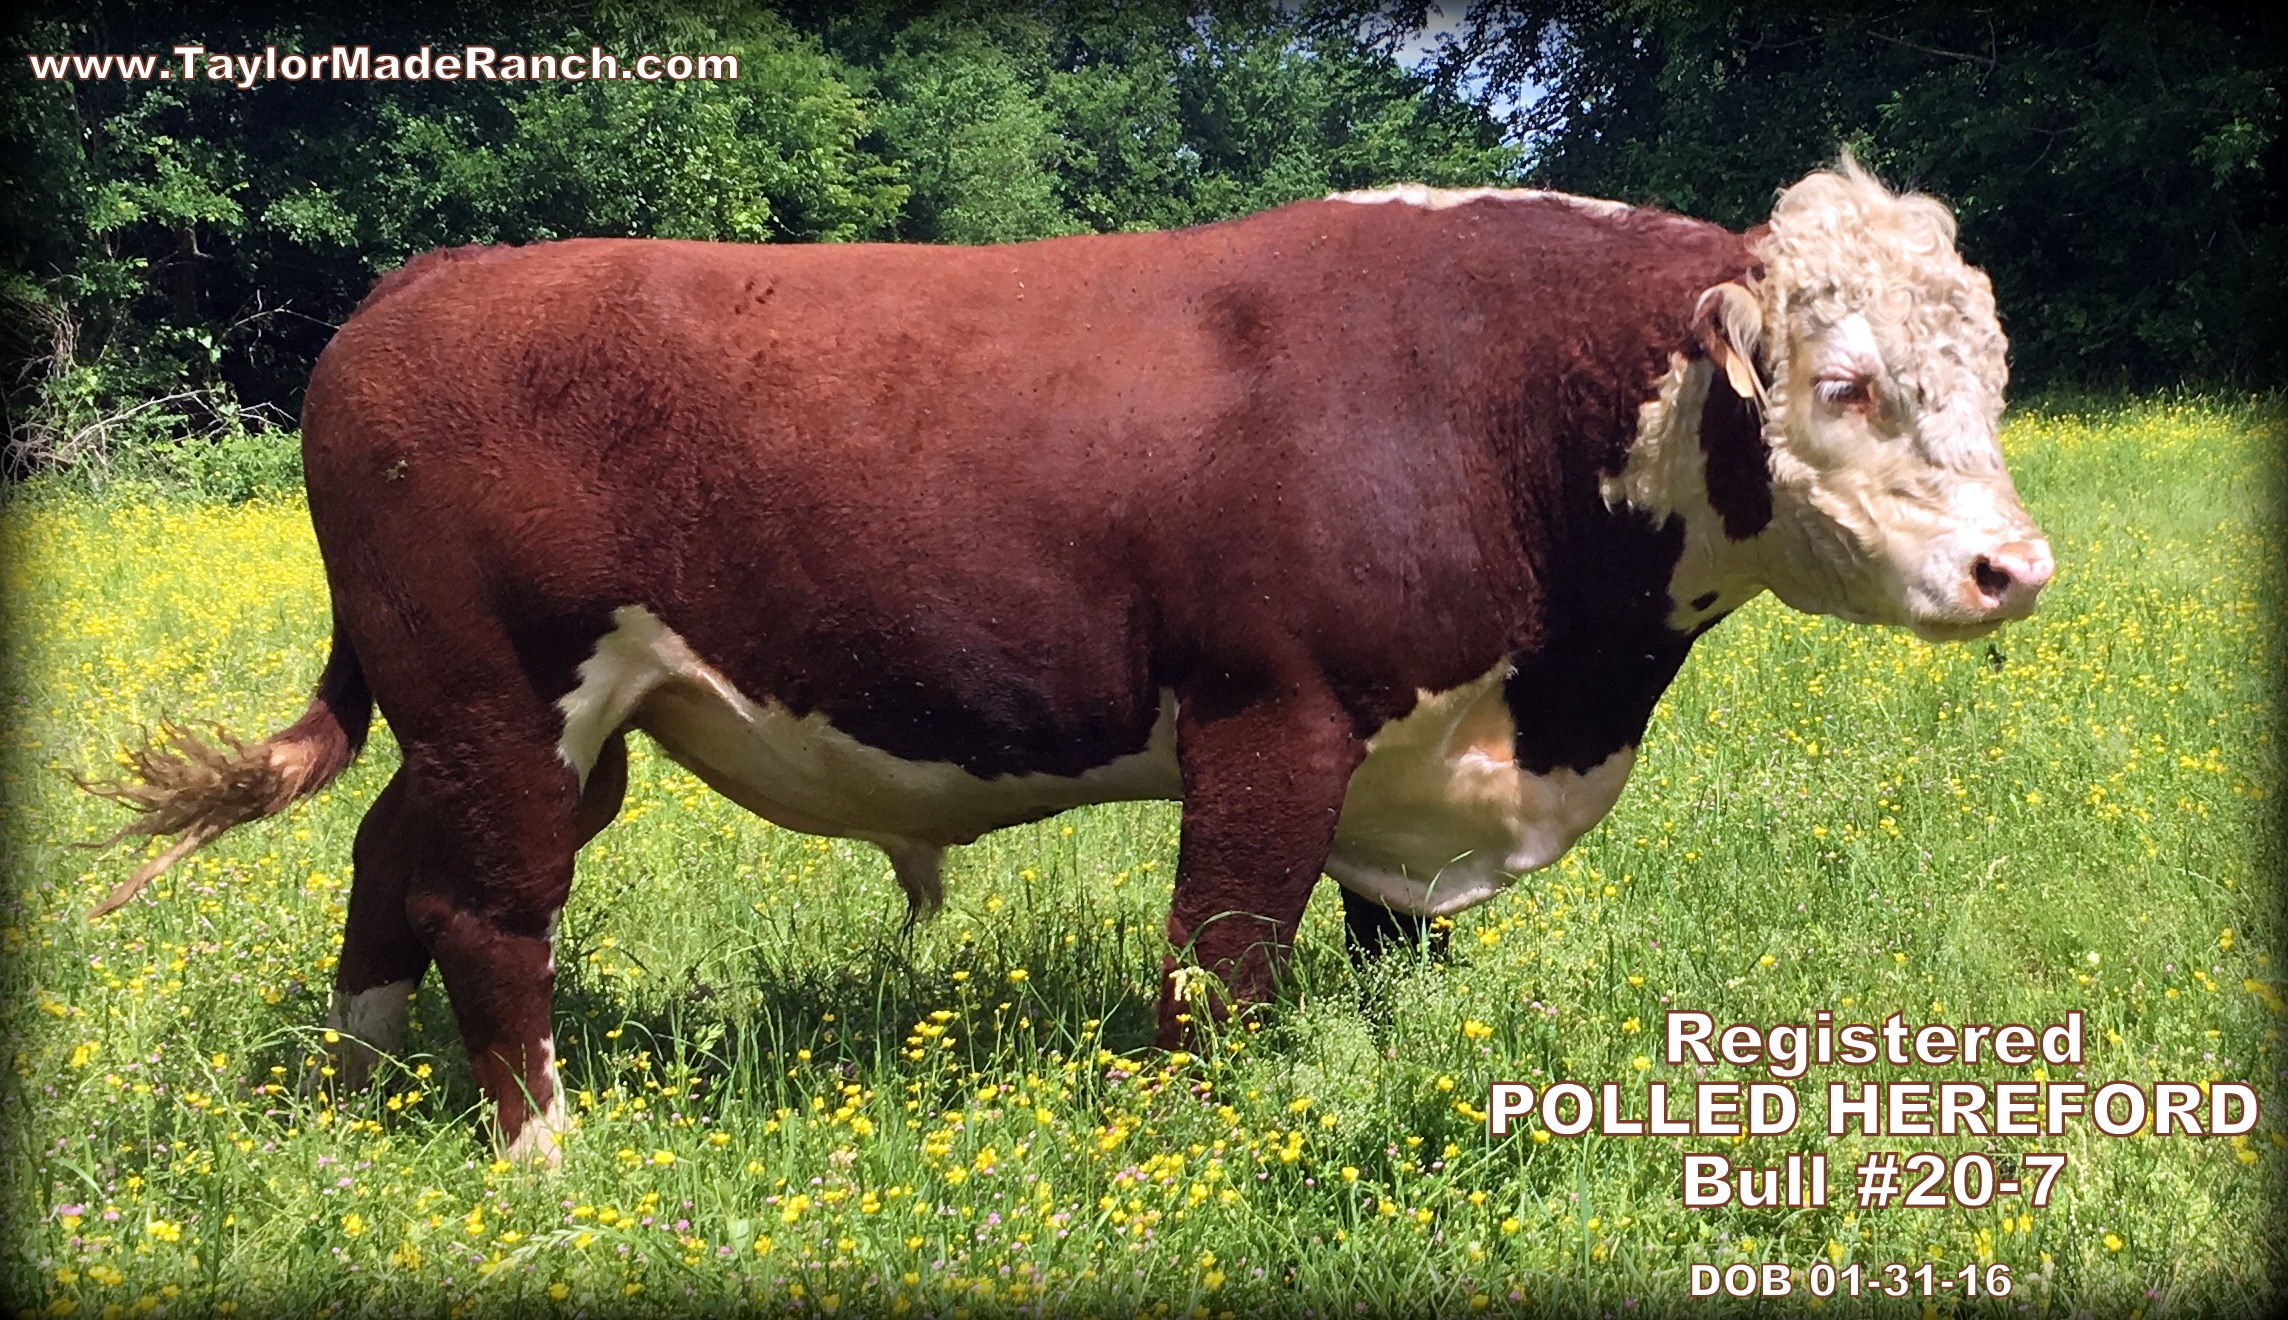 Registered Polled Hereford Cattle For Sale - Taylor-Made Ranch